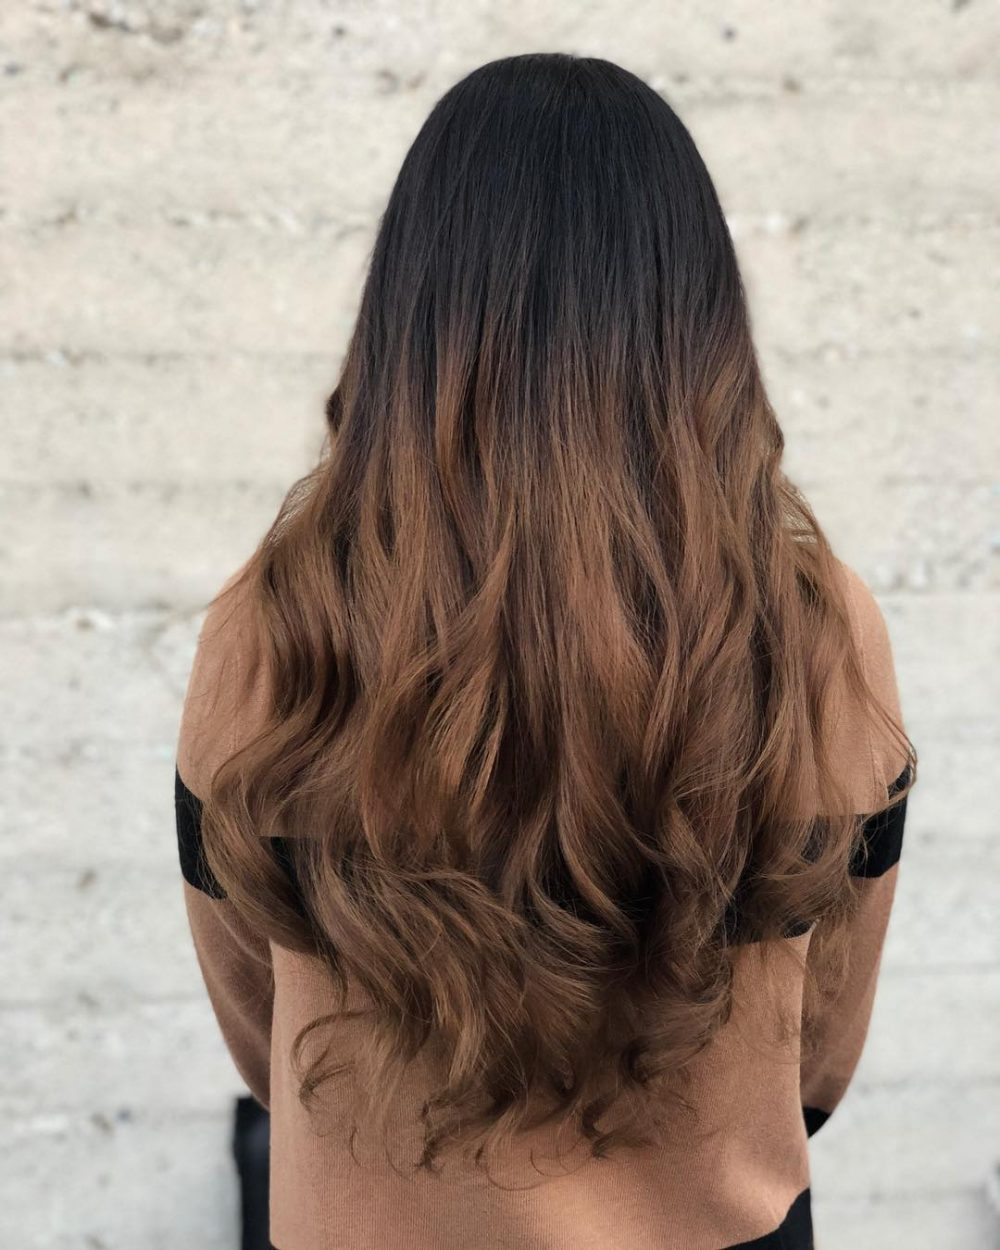 23 Long Ombre Hair Ideas Blowing Up In 2019